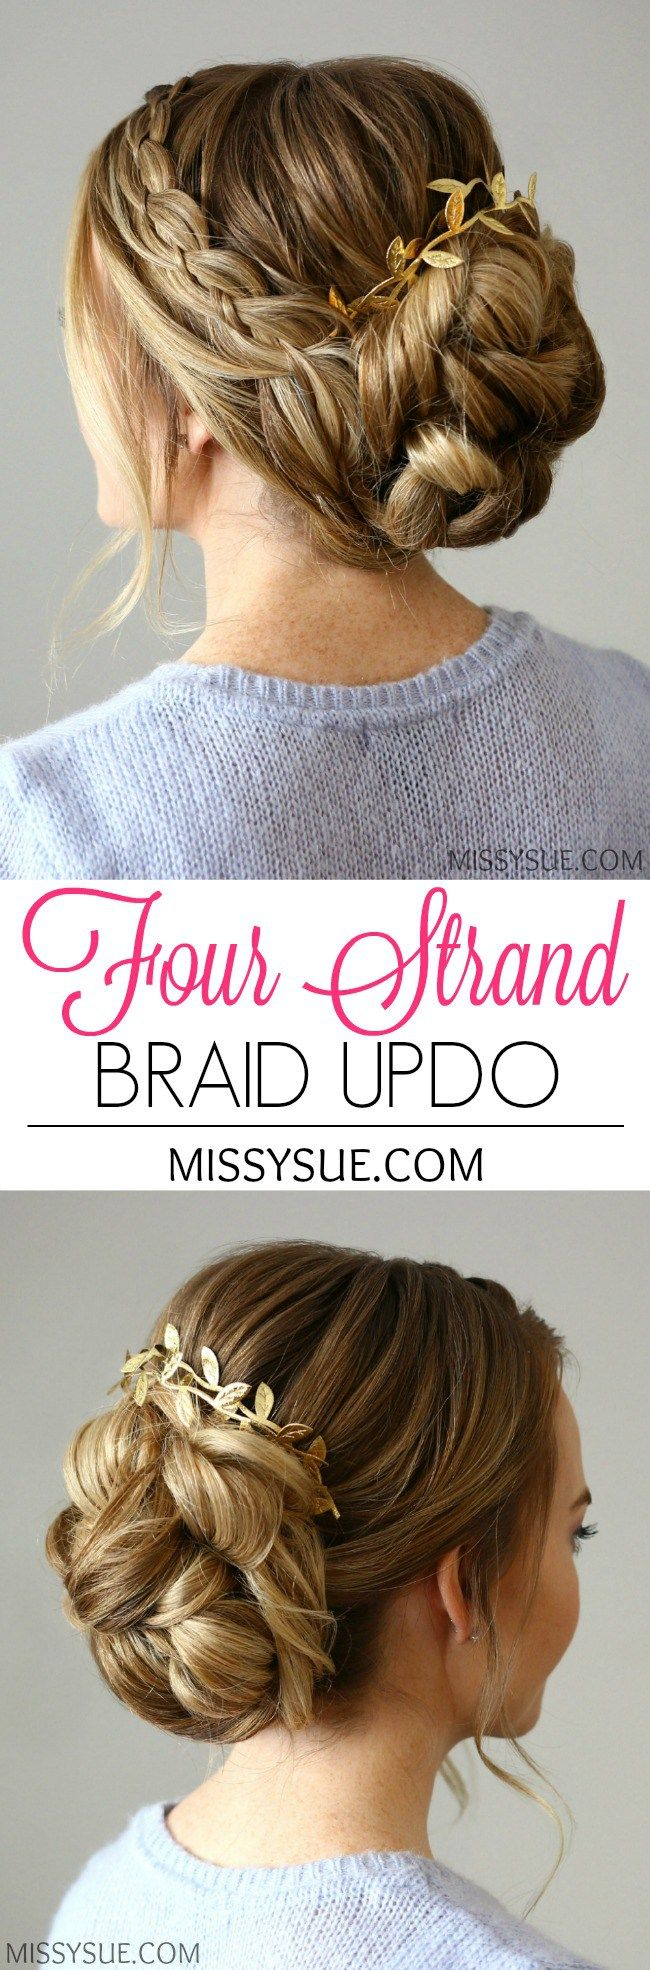 Four strand braid updo officer training school perfect hairstyle